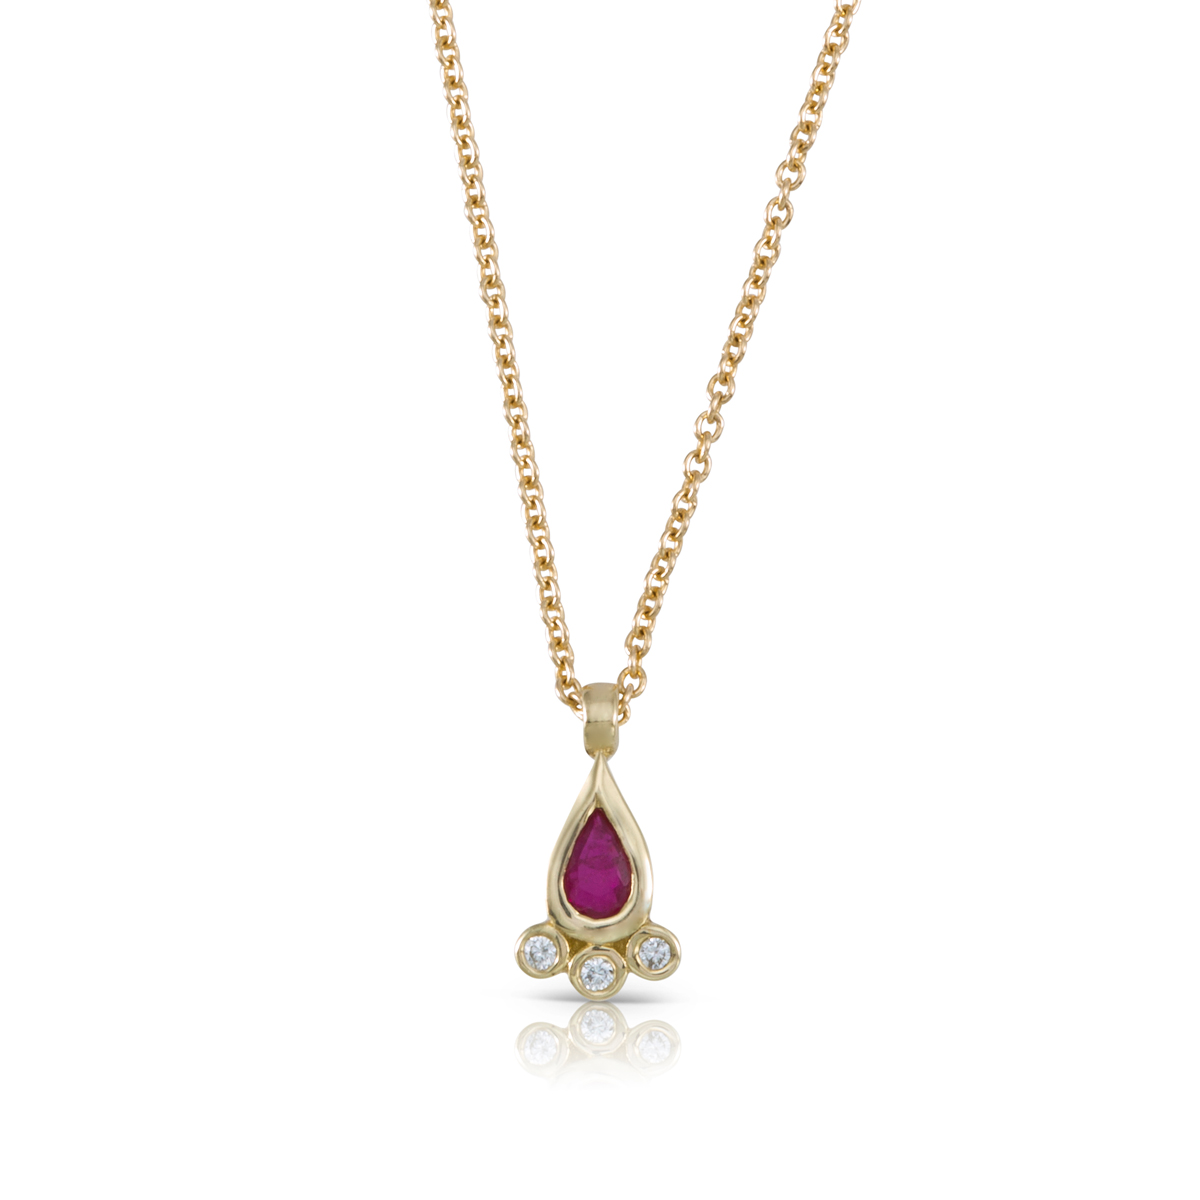 Pear shaped ruby and diamonds necklace